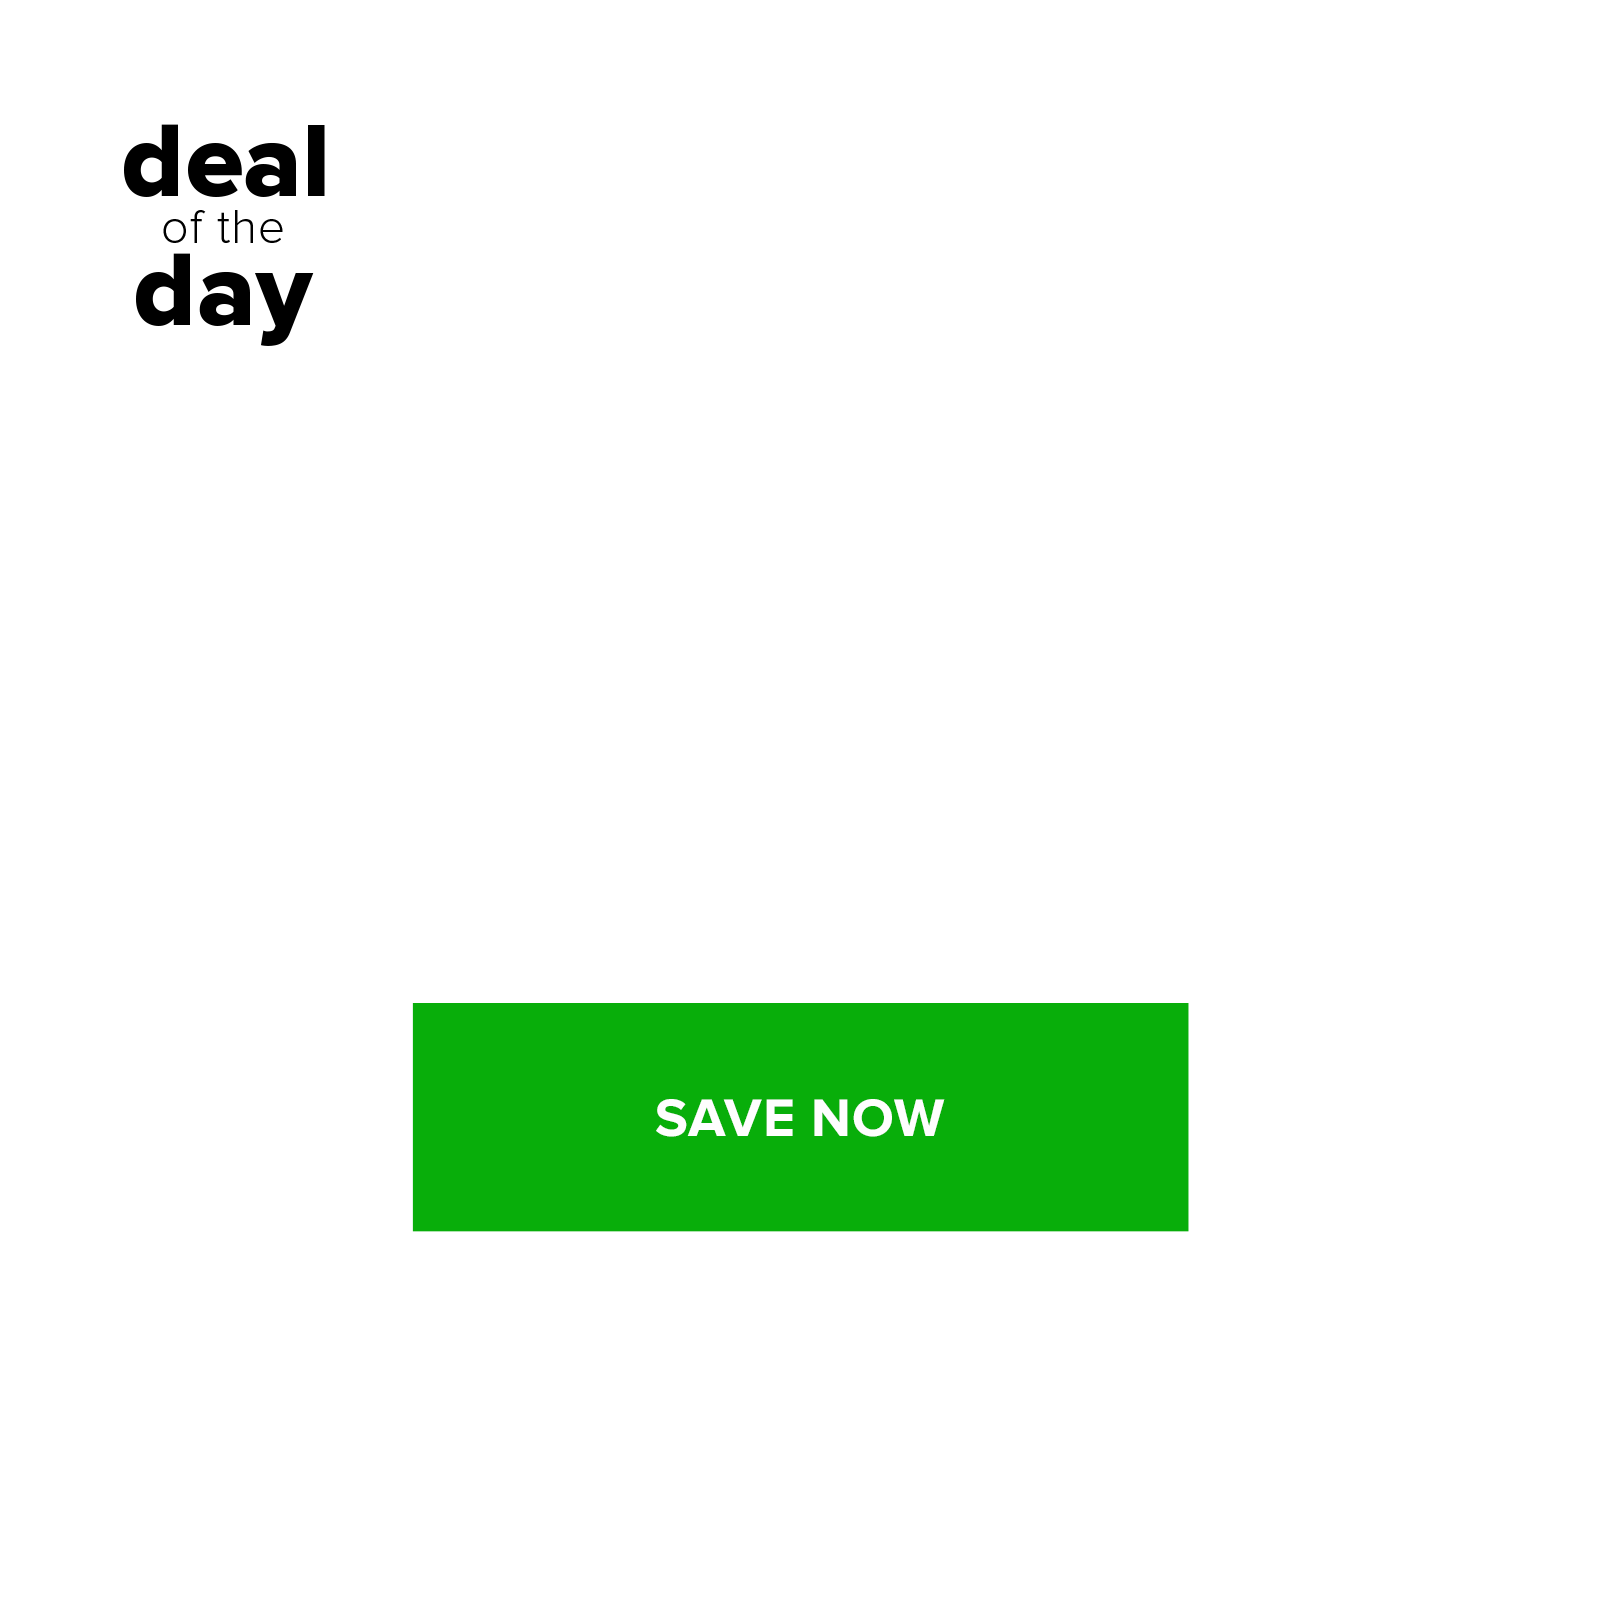 ultimate balance ball chair deal of the day